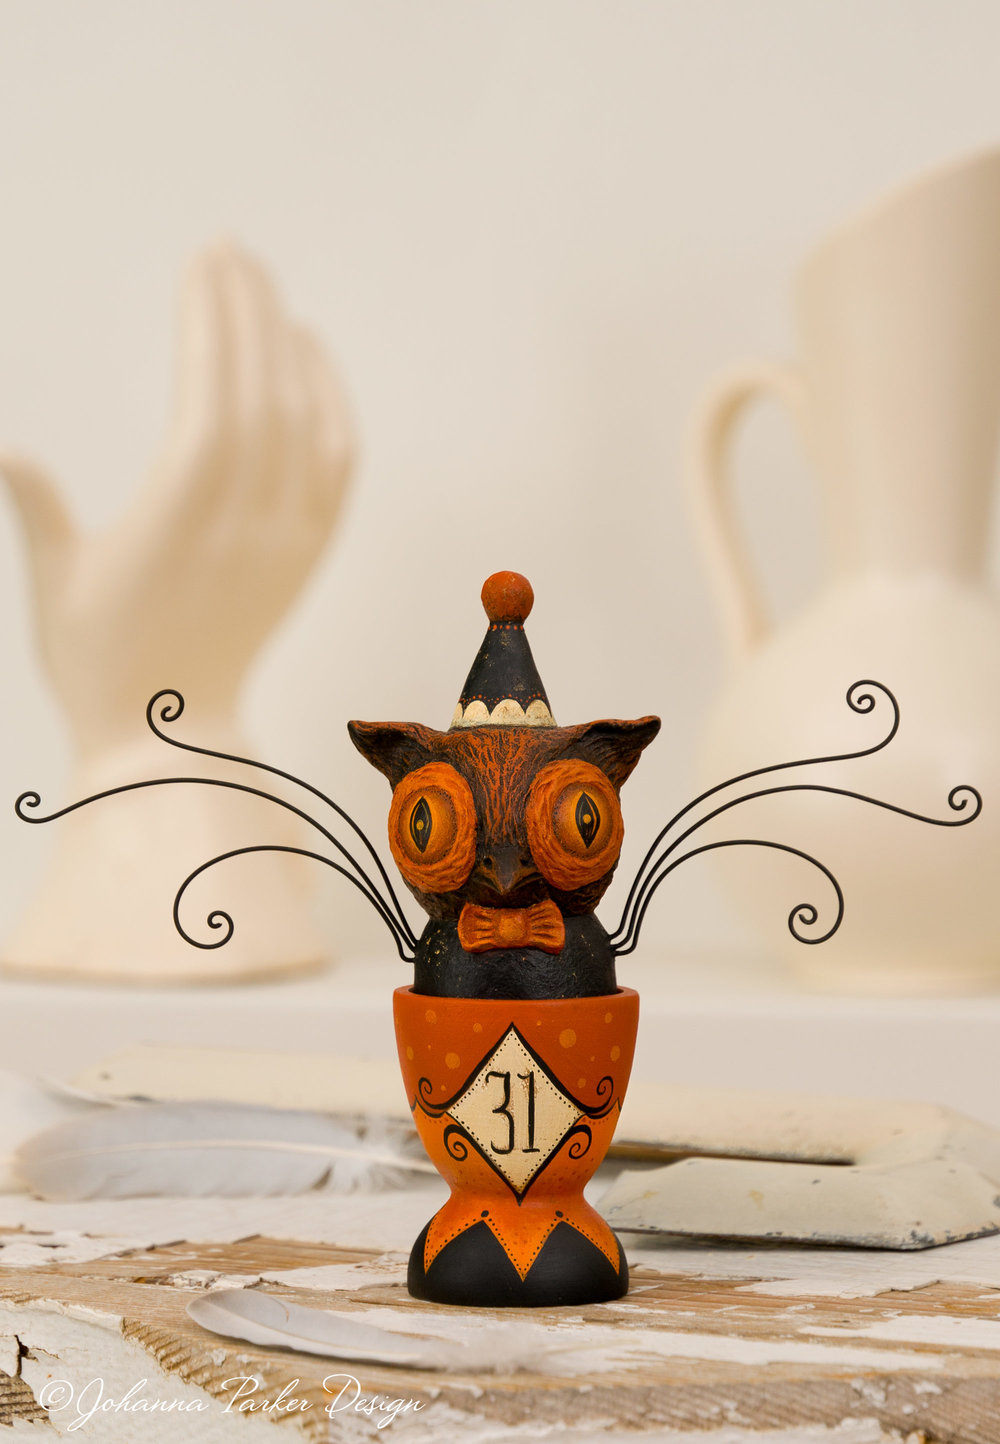 Owl 31 Egg Cup